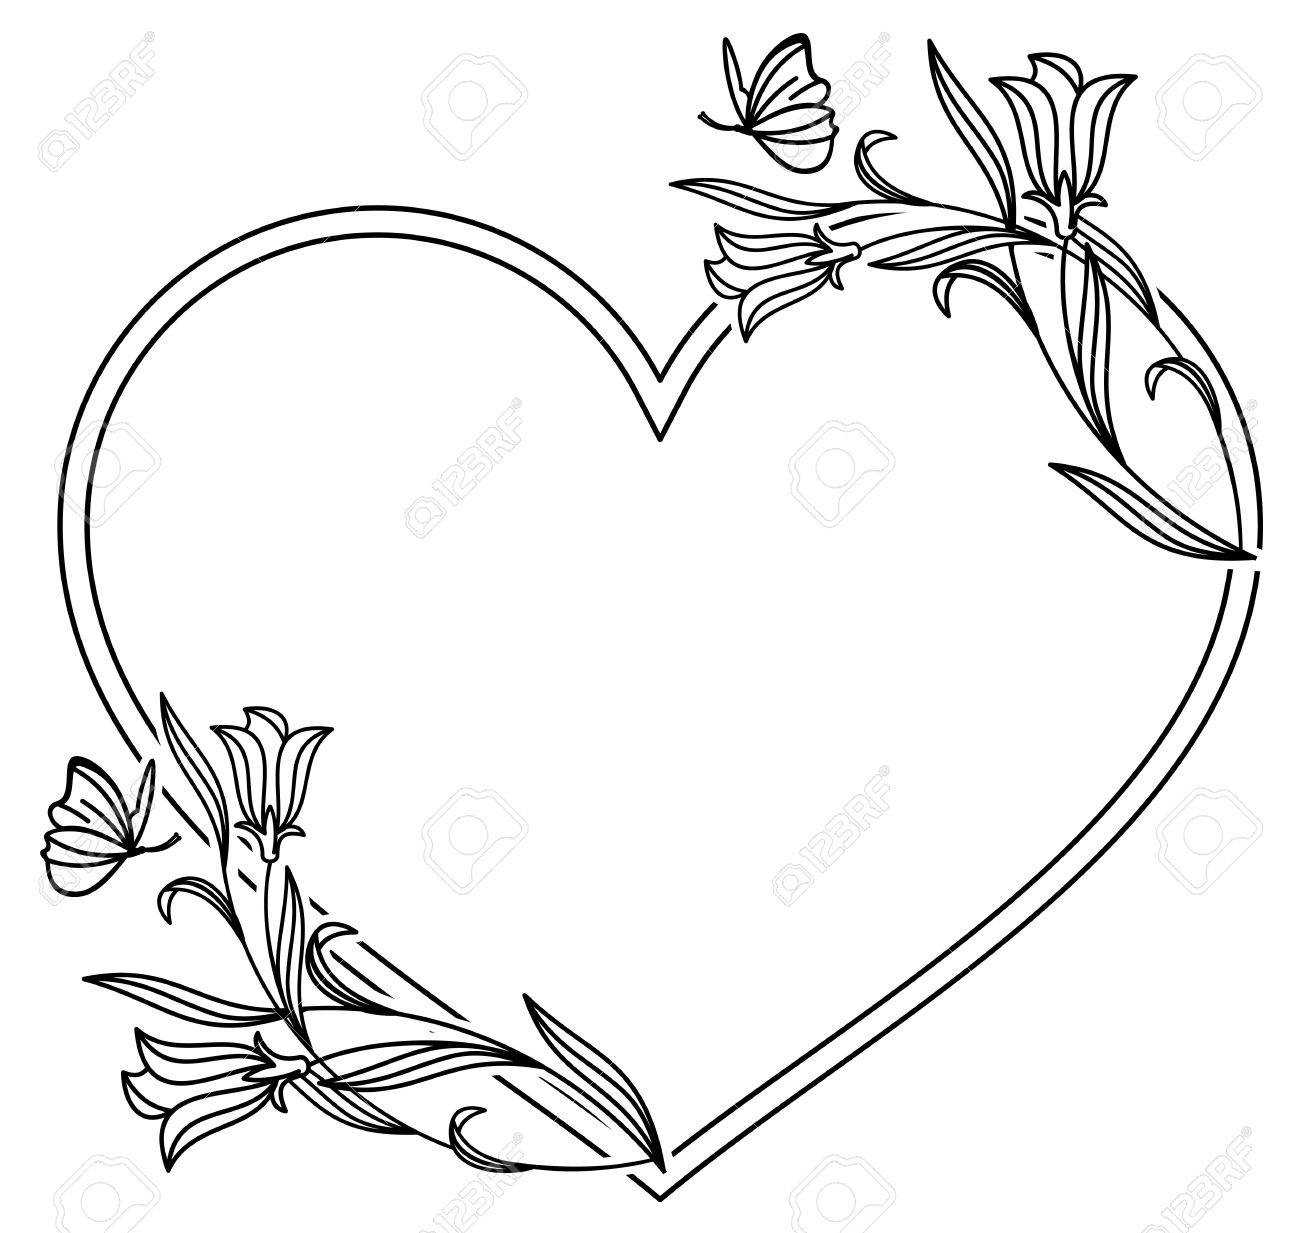 Heart Shaped Clipart | Free download best Heart Shaped Clipart on ...